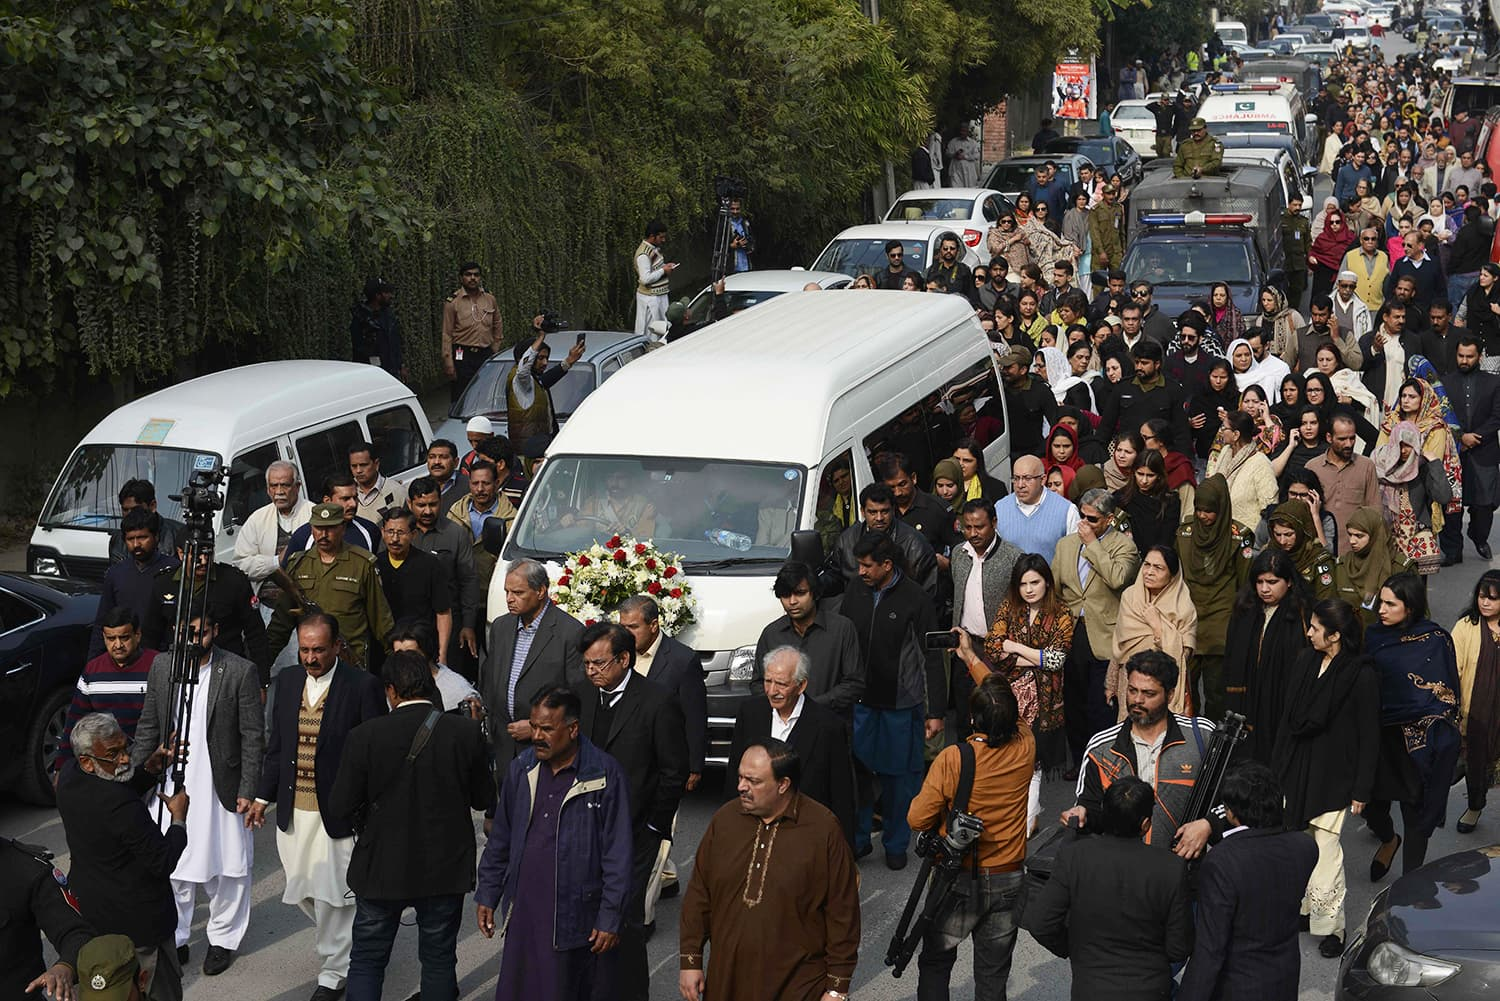 Mourners march alongside a vehicle carrying the coffin of lawyer and rights advocate Asma Jahangir during her funeral in Lahore  AFP